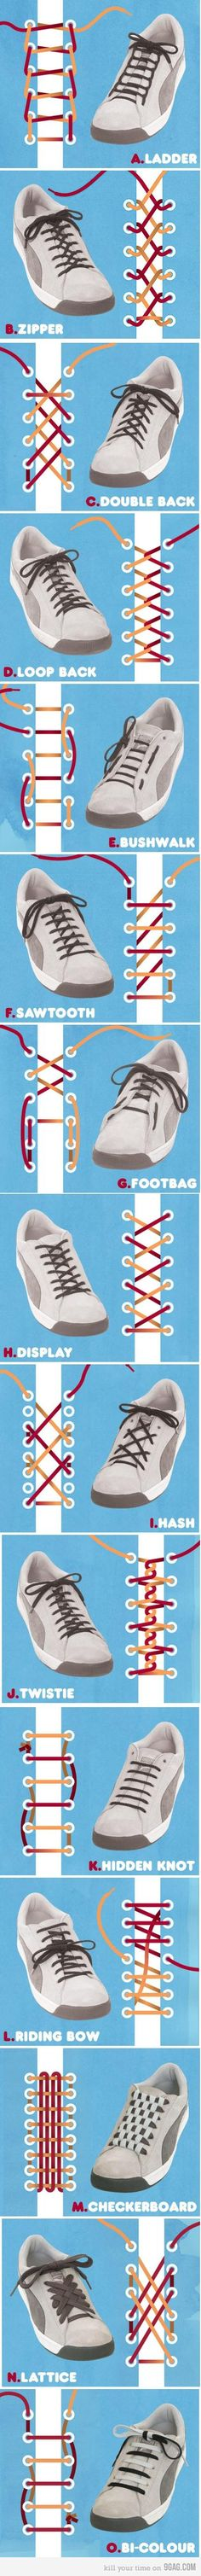 Shoe ties. So many possibilities!